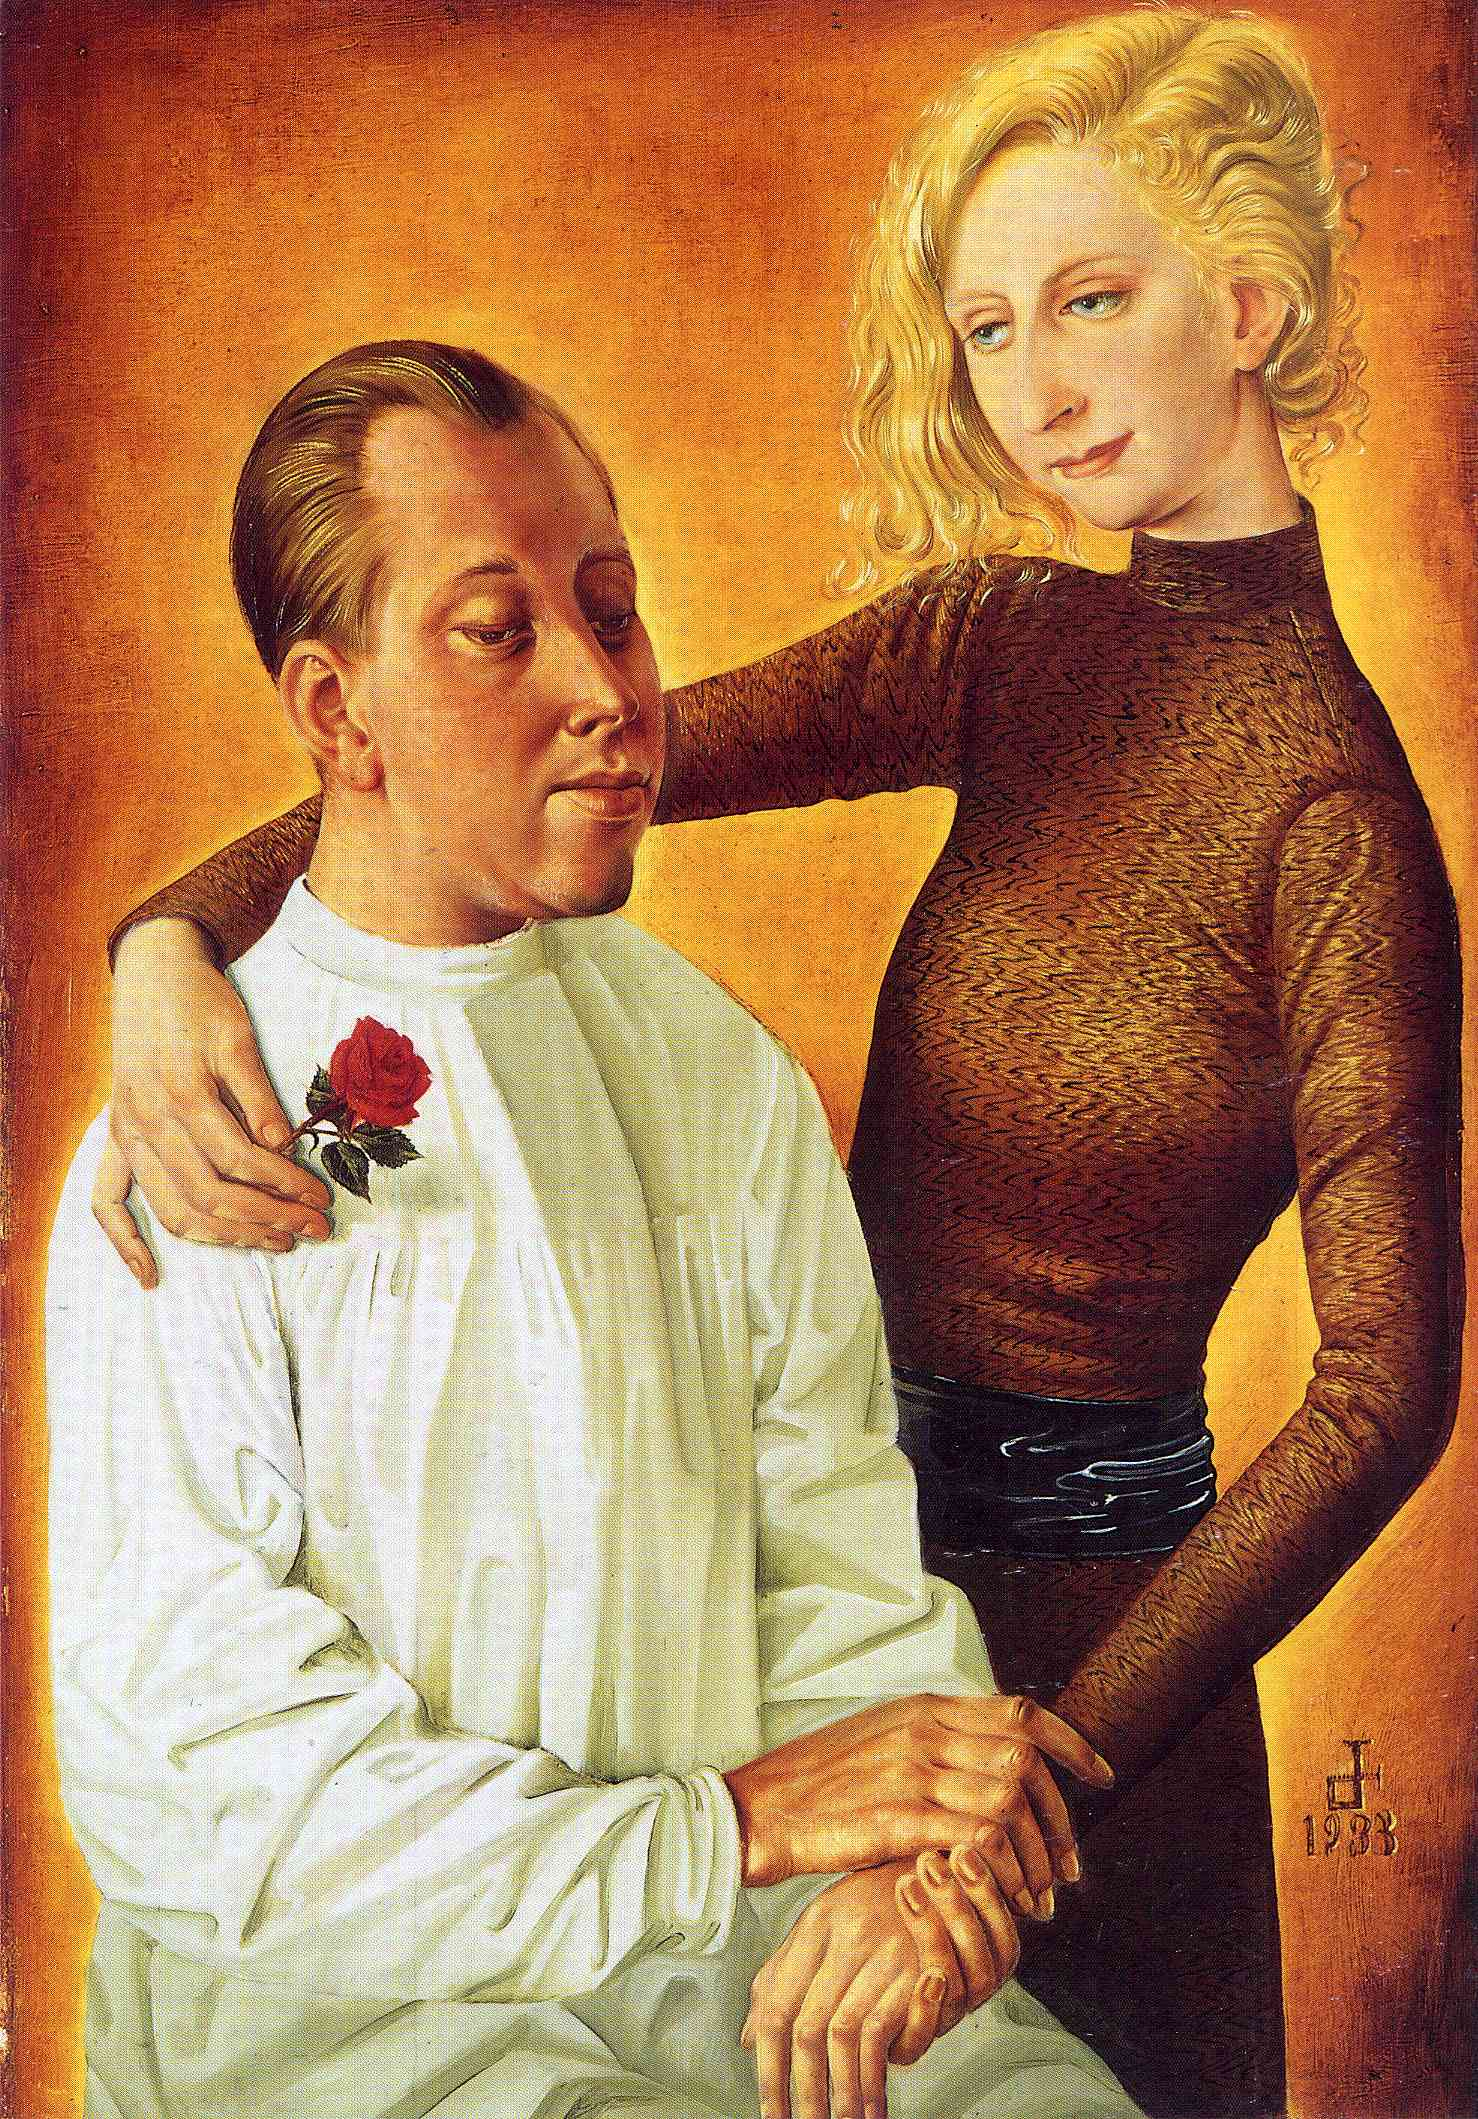 http://uploads4.wikipaintings.org/images/otto-dix/portrait-of-the-painter-hans-theo-richter-and-his-wife-gisela.jpg